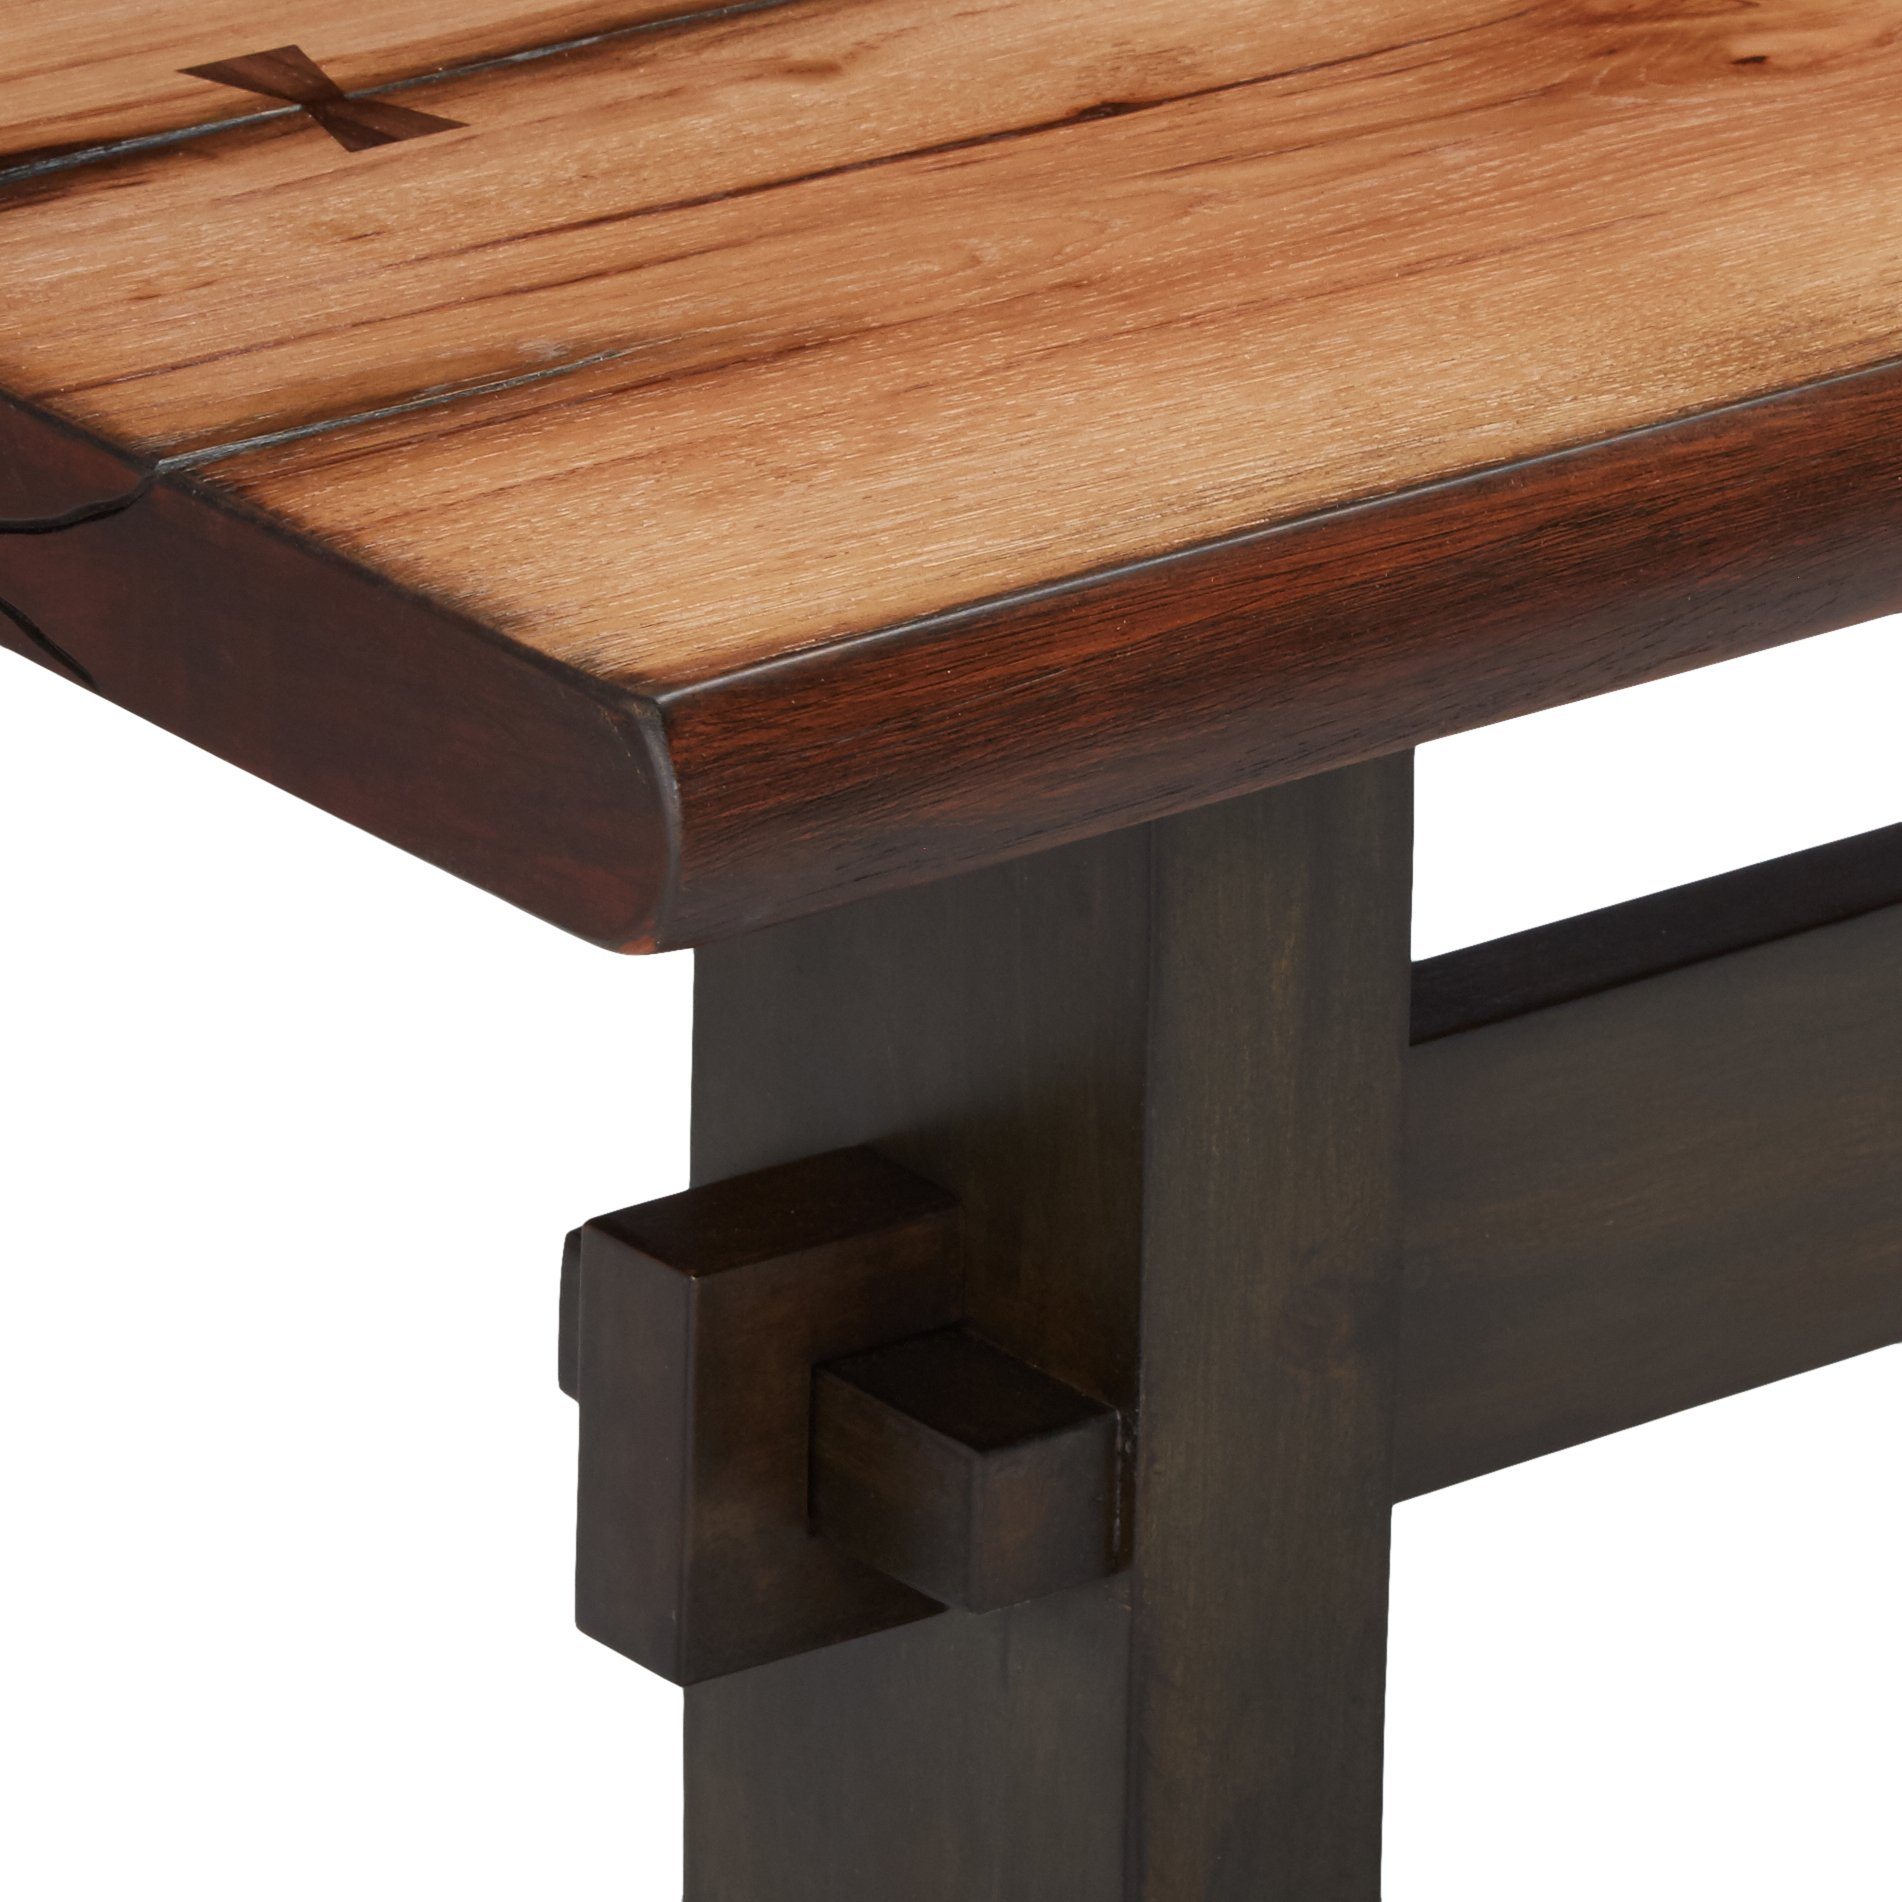 Burnham Two-Tone Live Edge Dining Bench with Trestle Base Natural Honey and Espresso by Scott Living (Image #4)